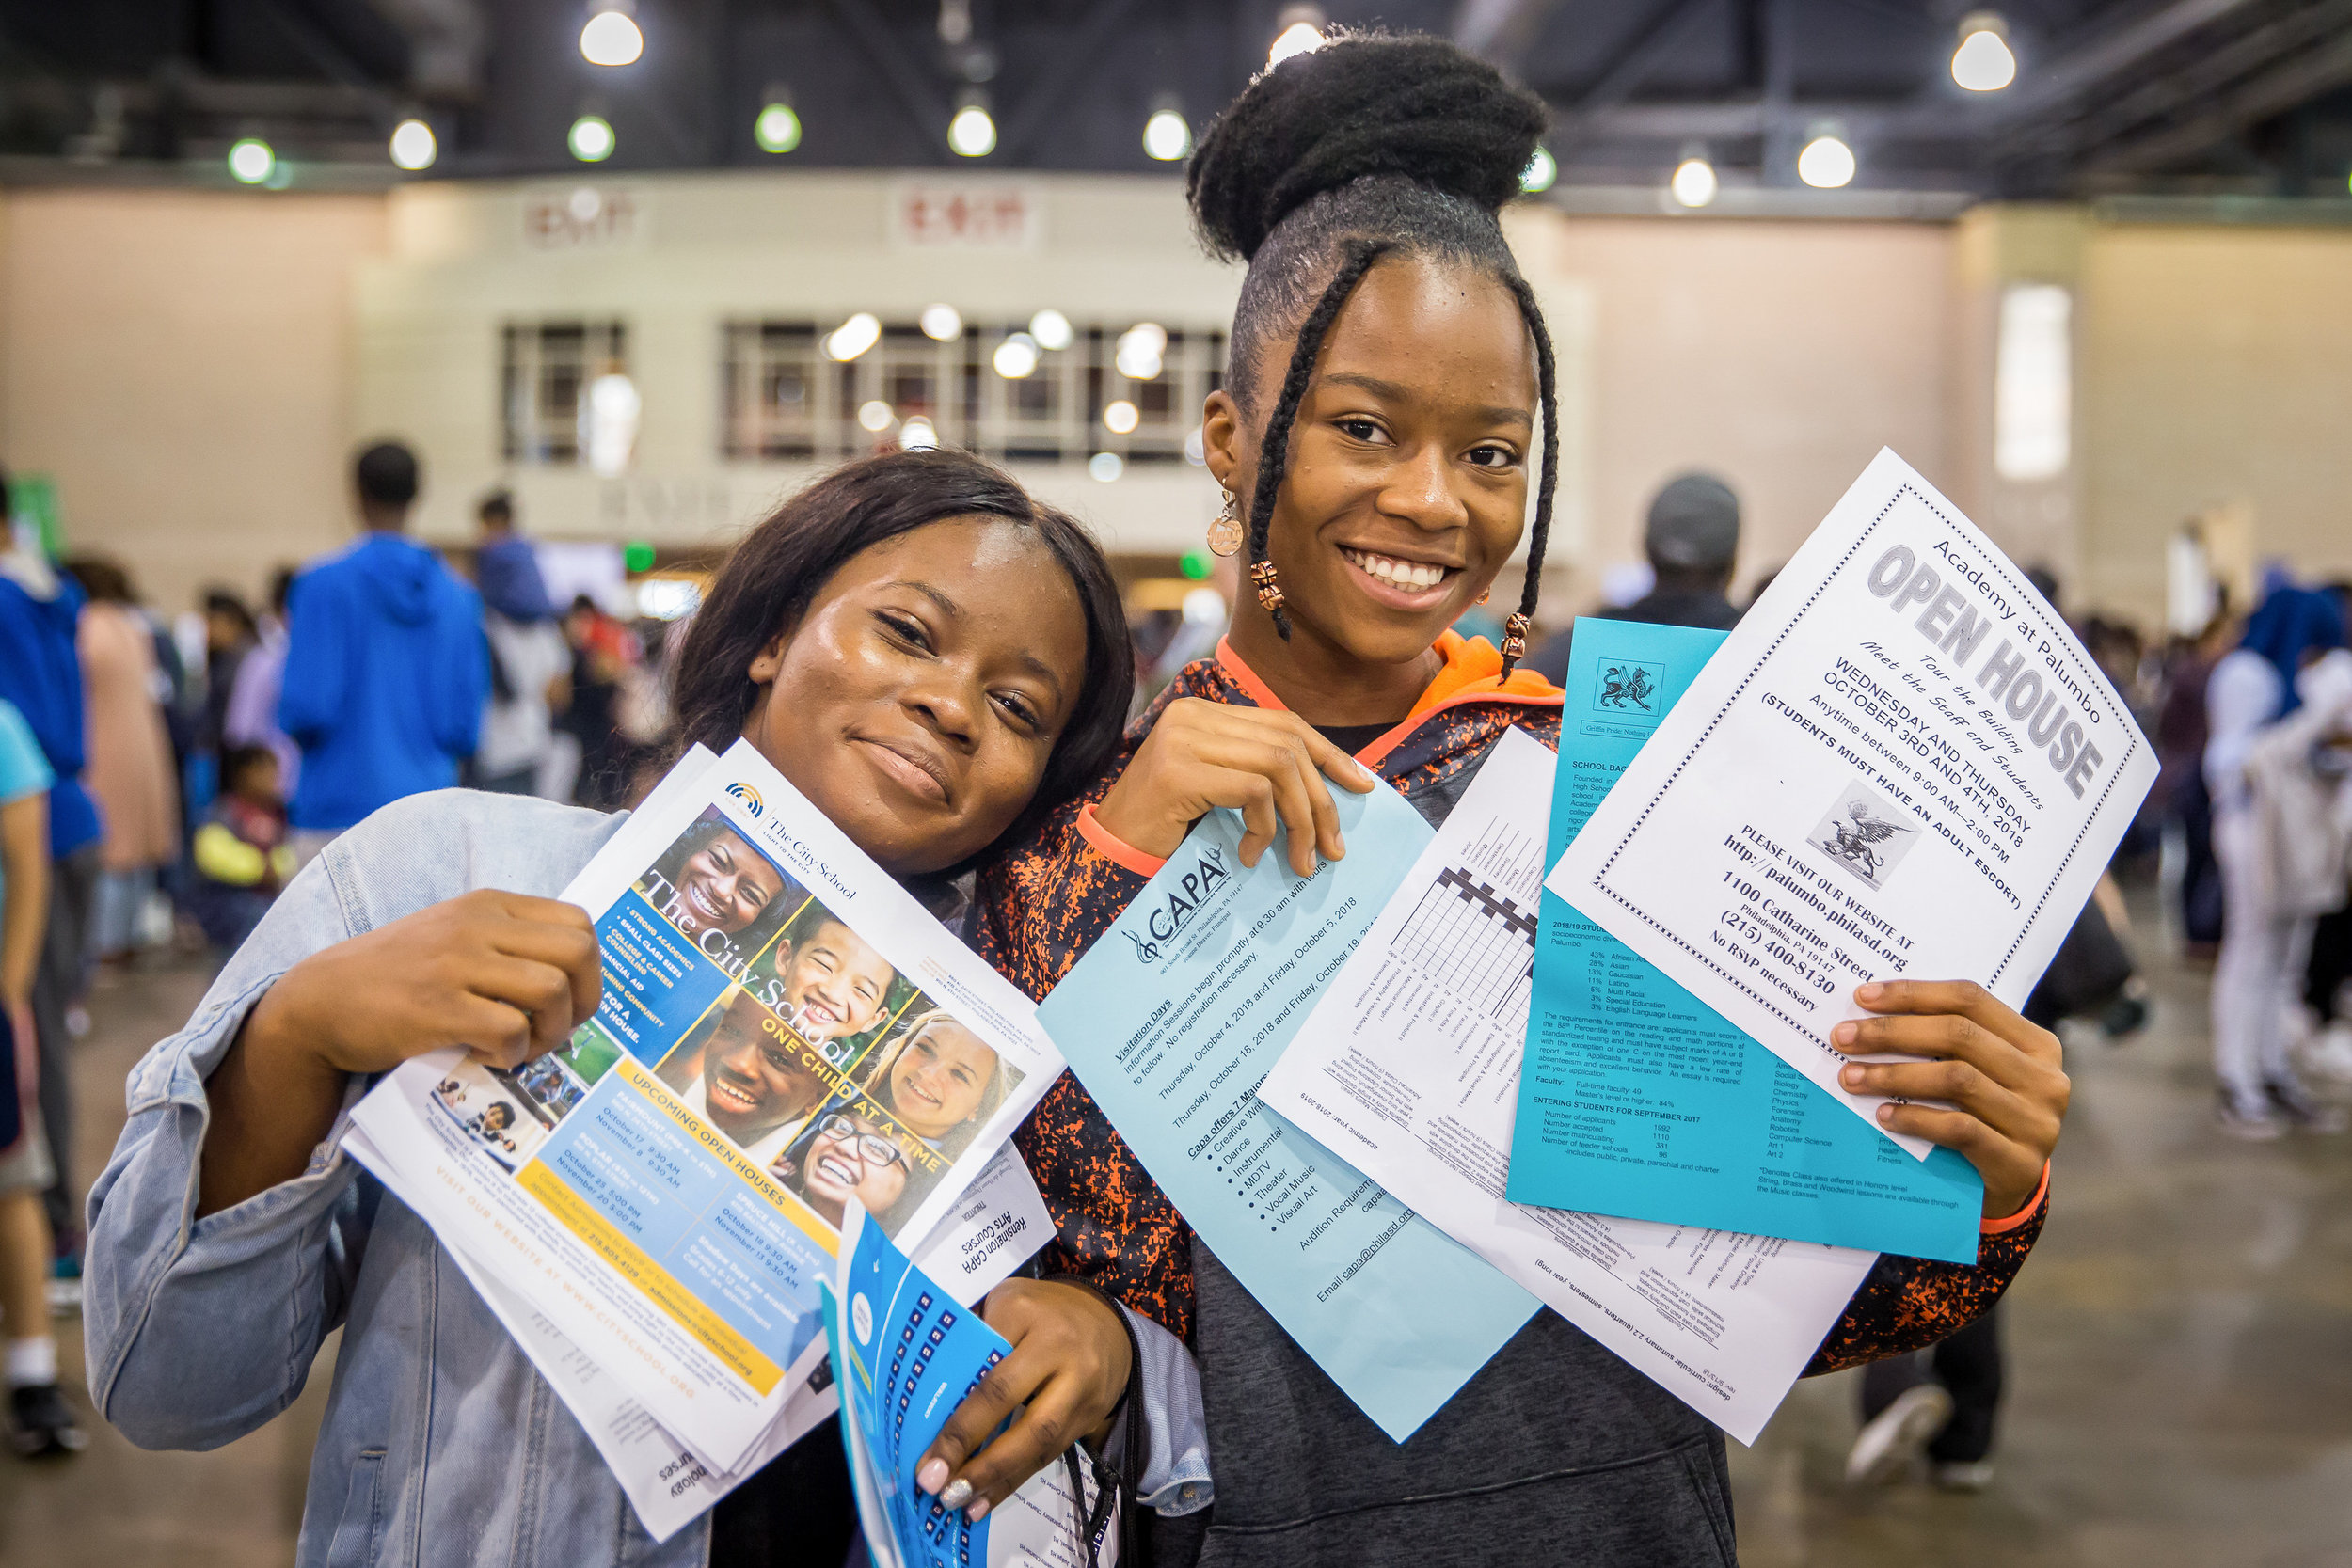 Learn About and Apply to High Schools at the Fair - The Philly High School Fair will take place on Friday, September 20, 2019 from 5PM to 7PM, and Saturday, September 21, 2019 from 10AM to 2PM.We'll see you in September!